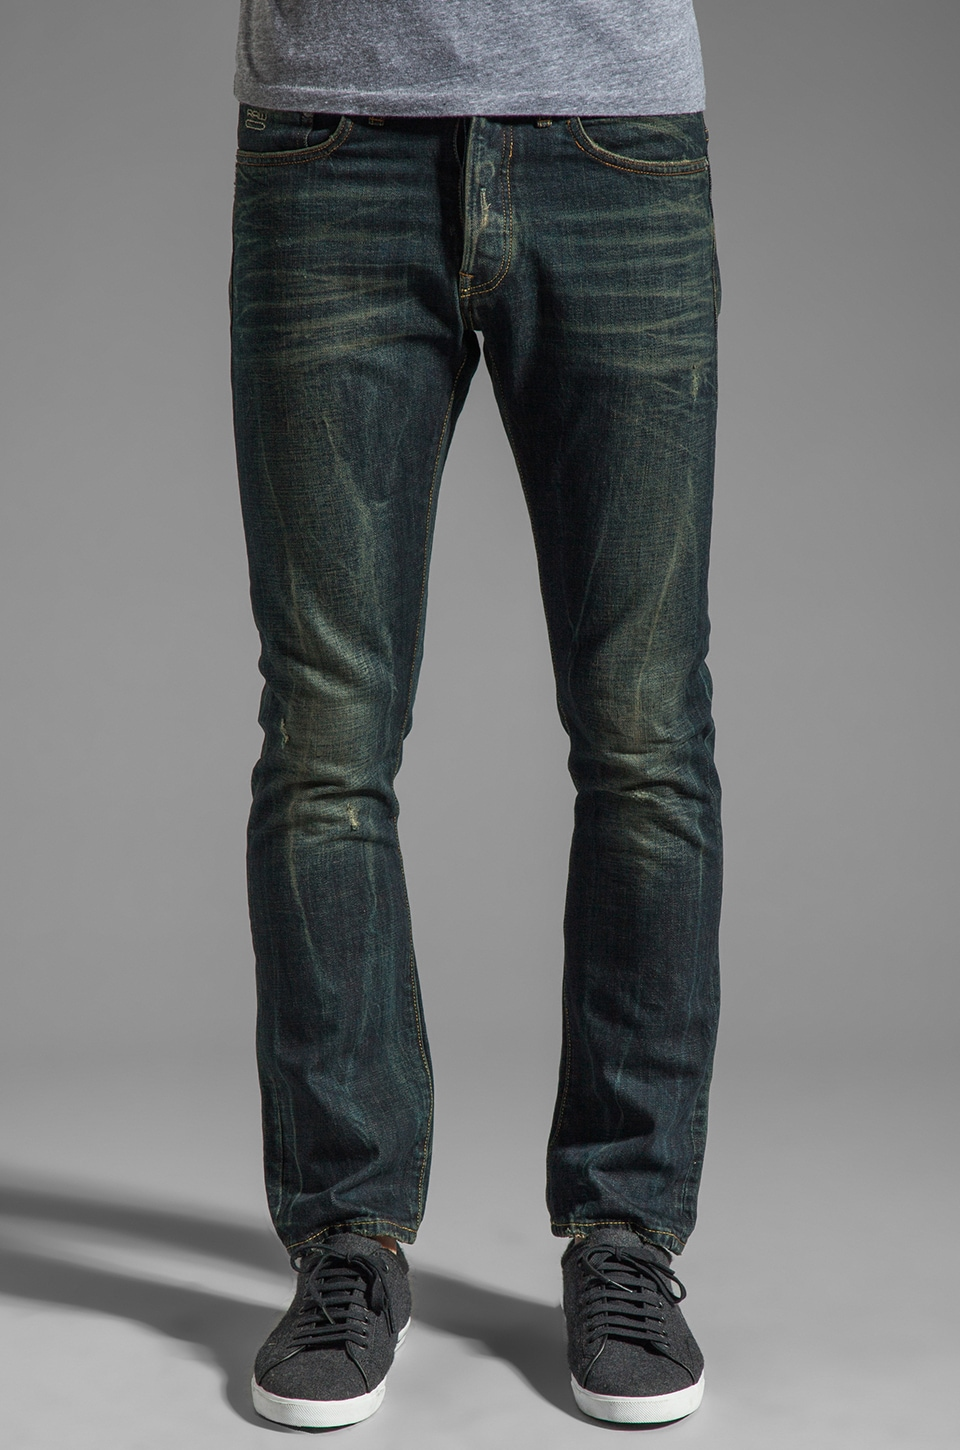 G-Star 3301 Slim in Contract Denim Worn In